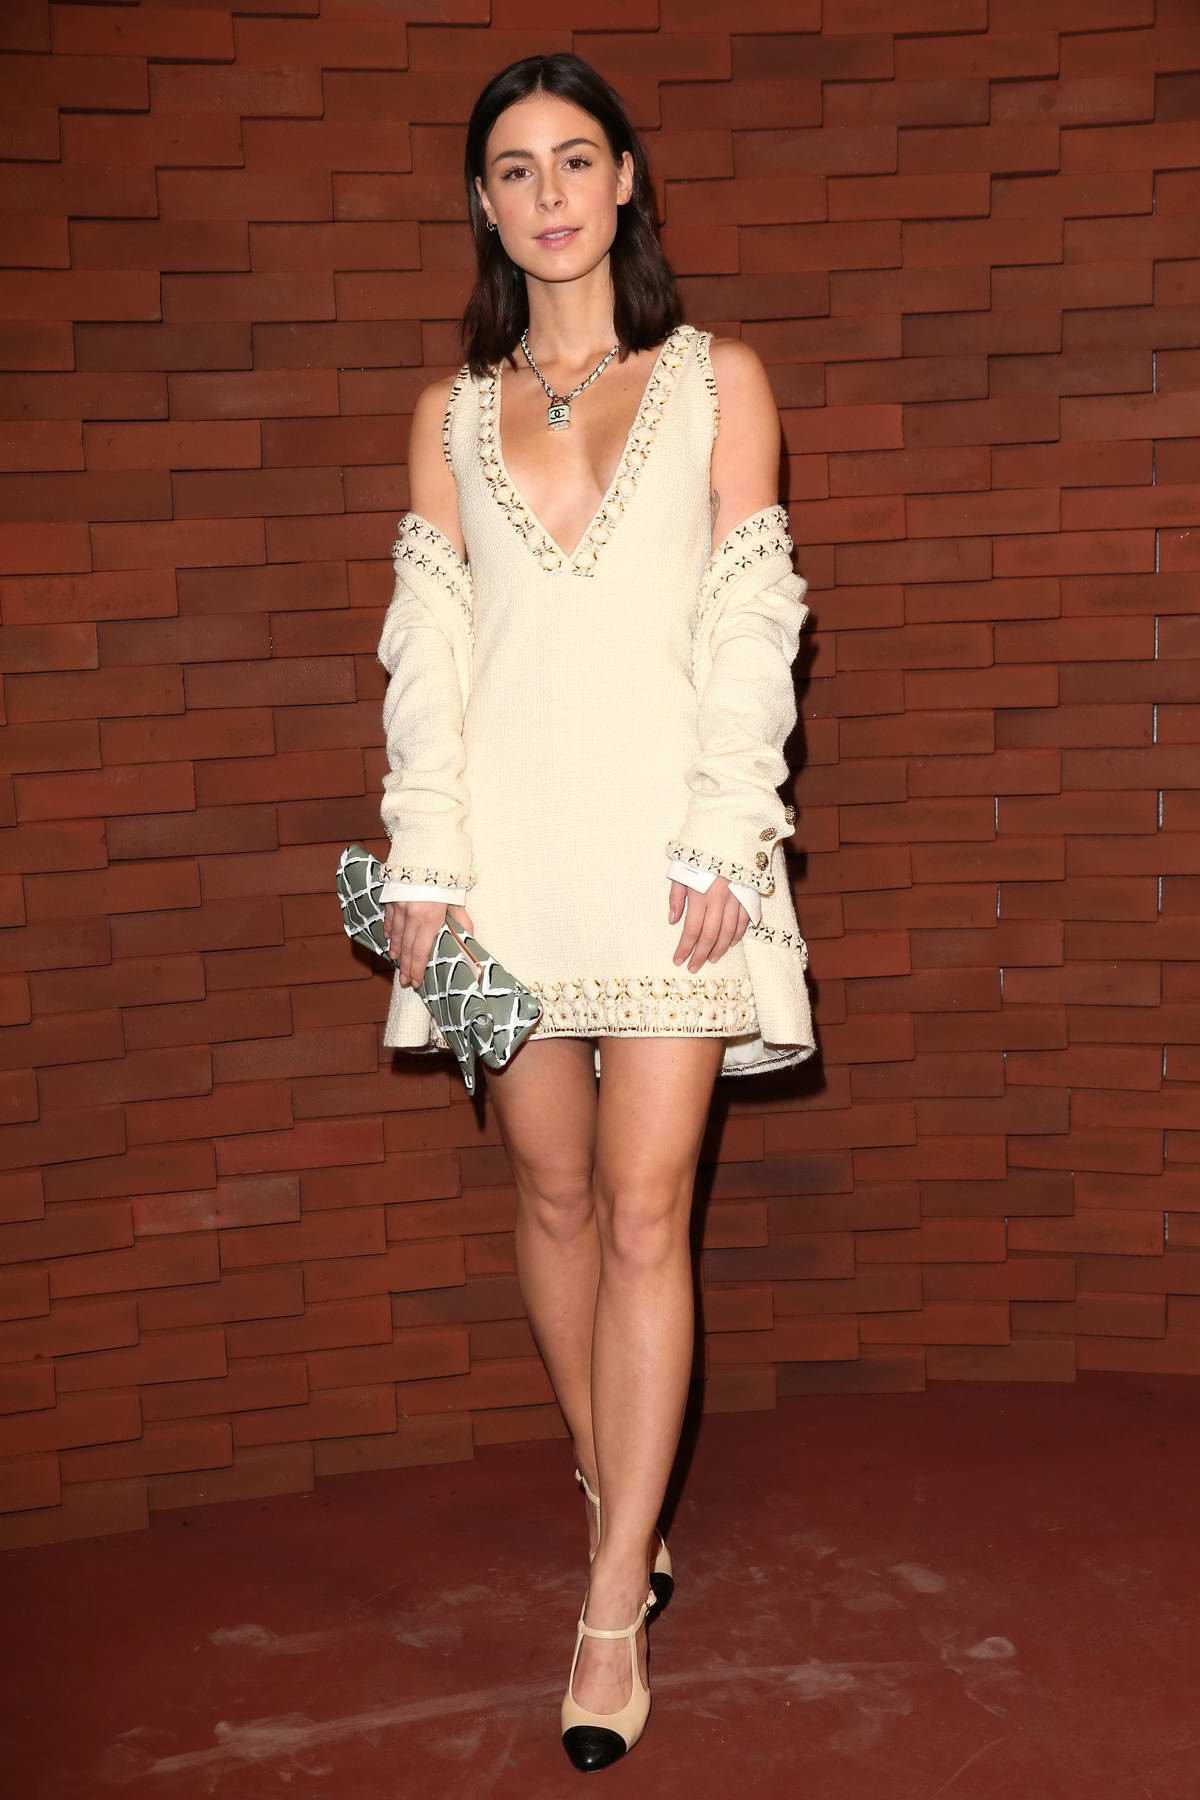 Lena Meyer-Landrut at Chanel Metiers d'Art Collection Fashion Show in Hamburg, Germany